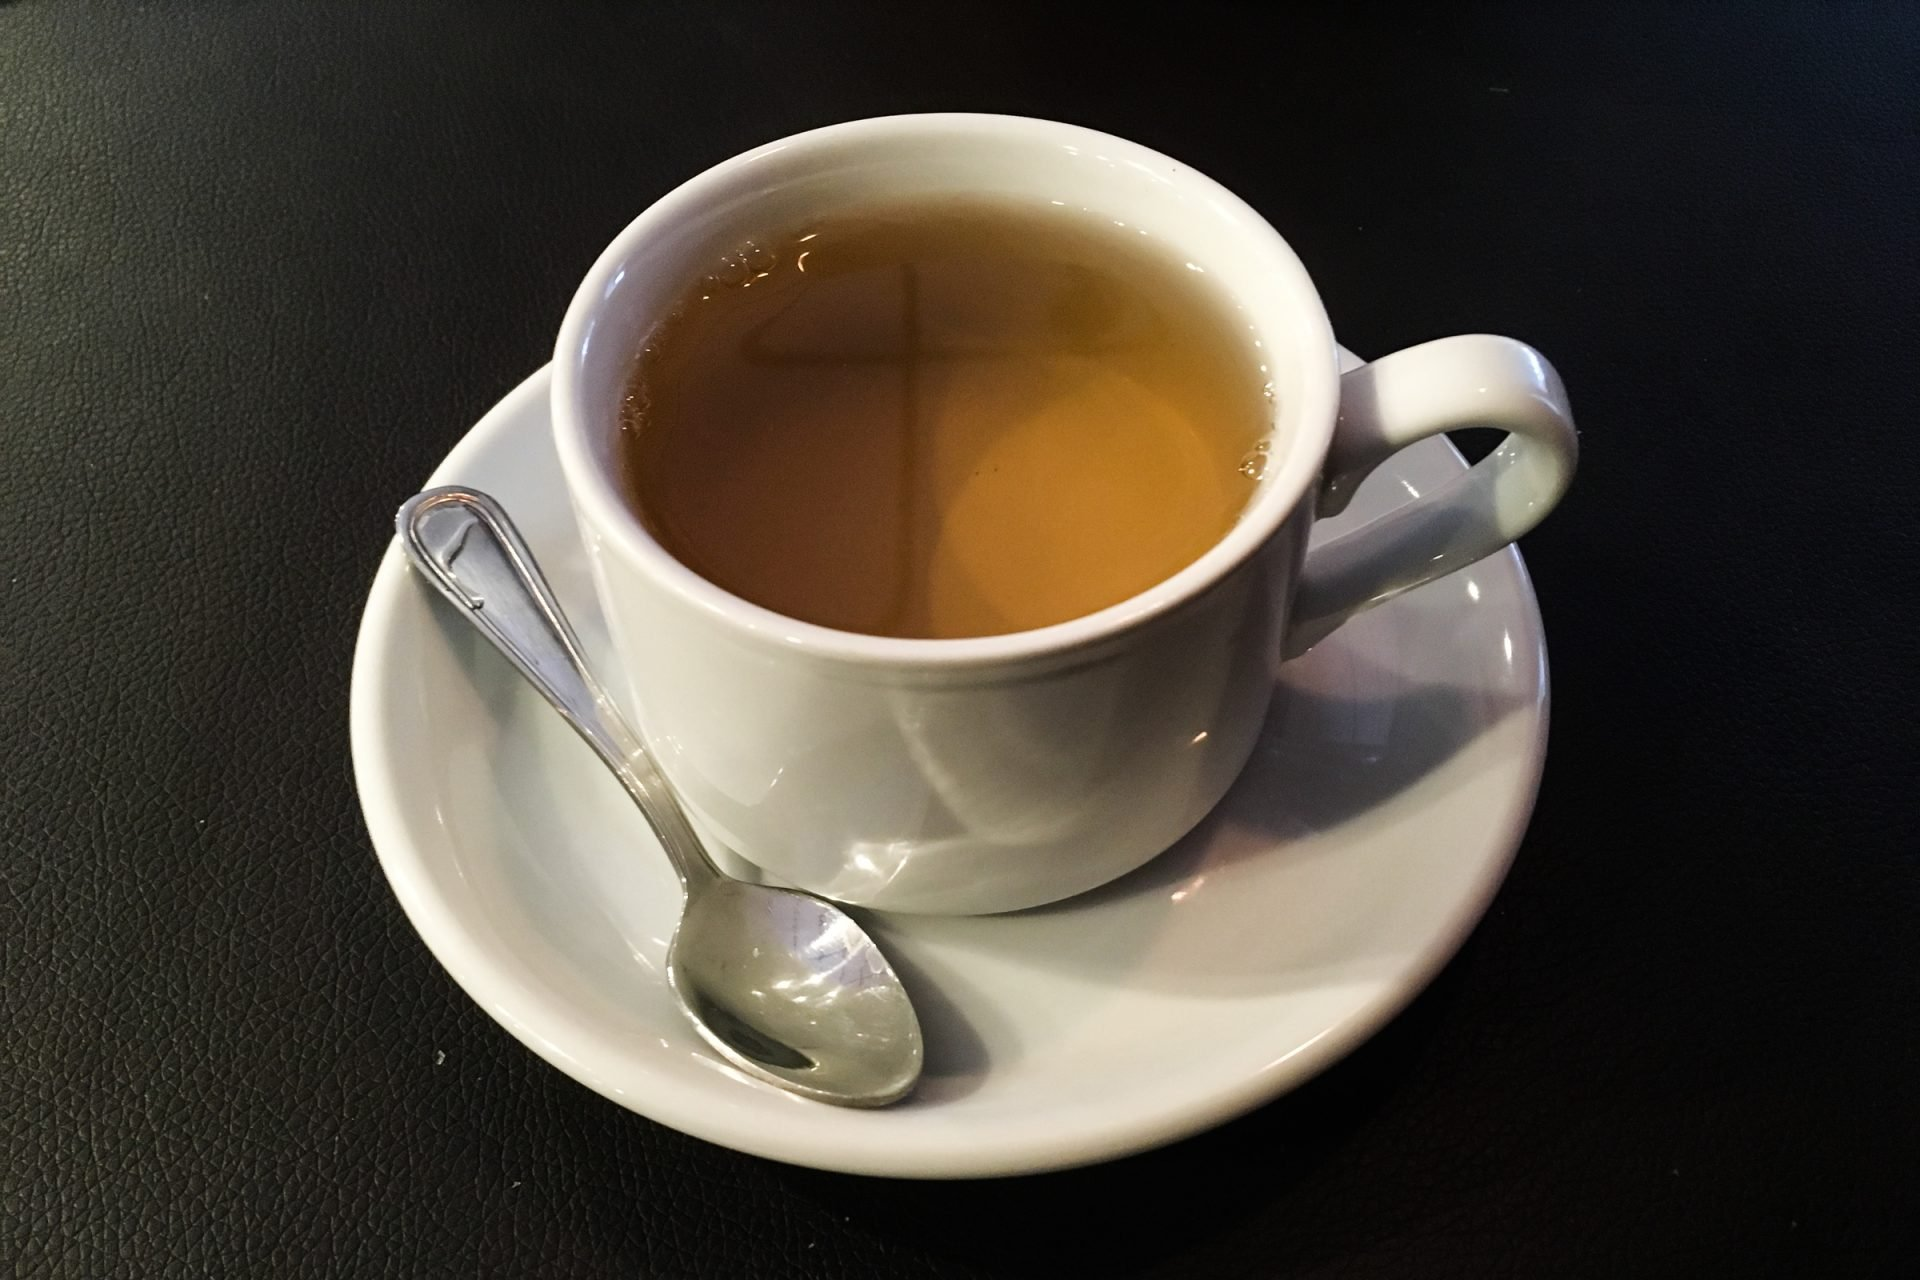 Cup Of Tea On Saucer With Spoon